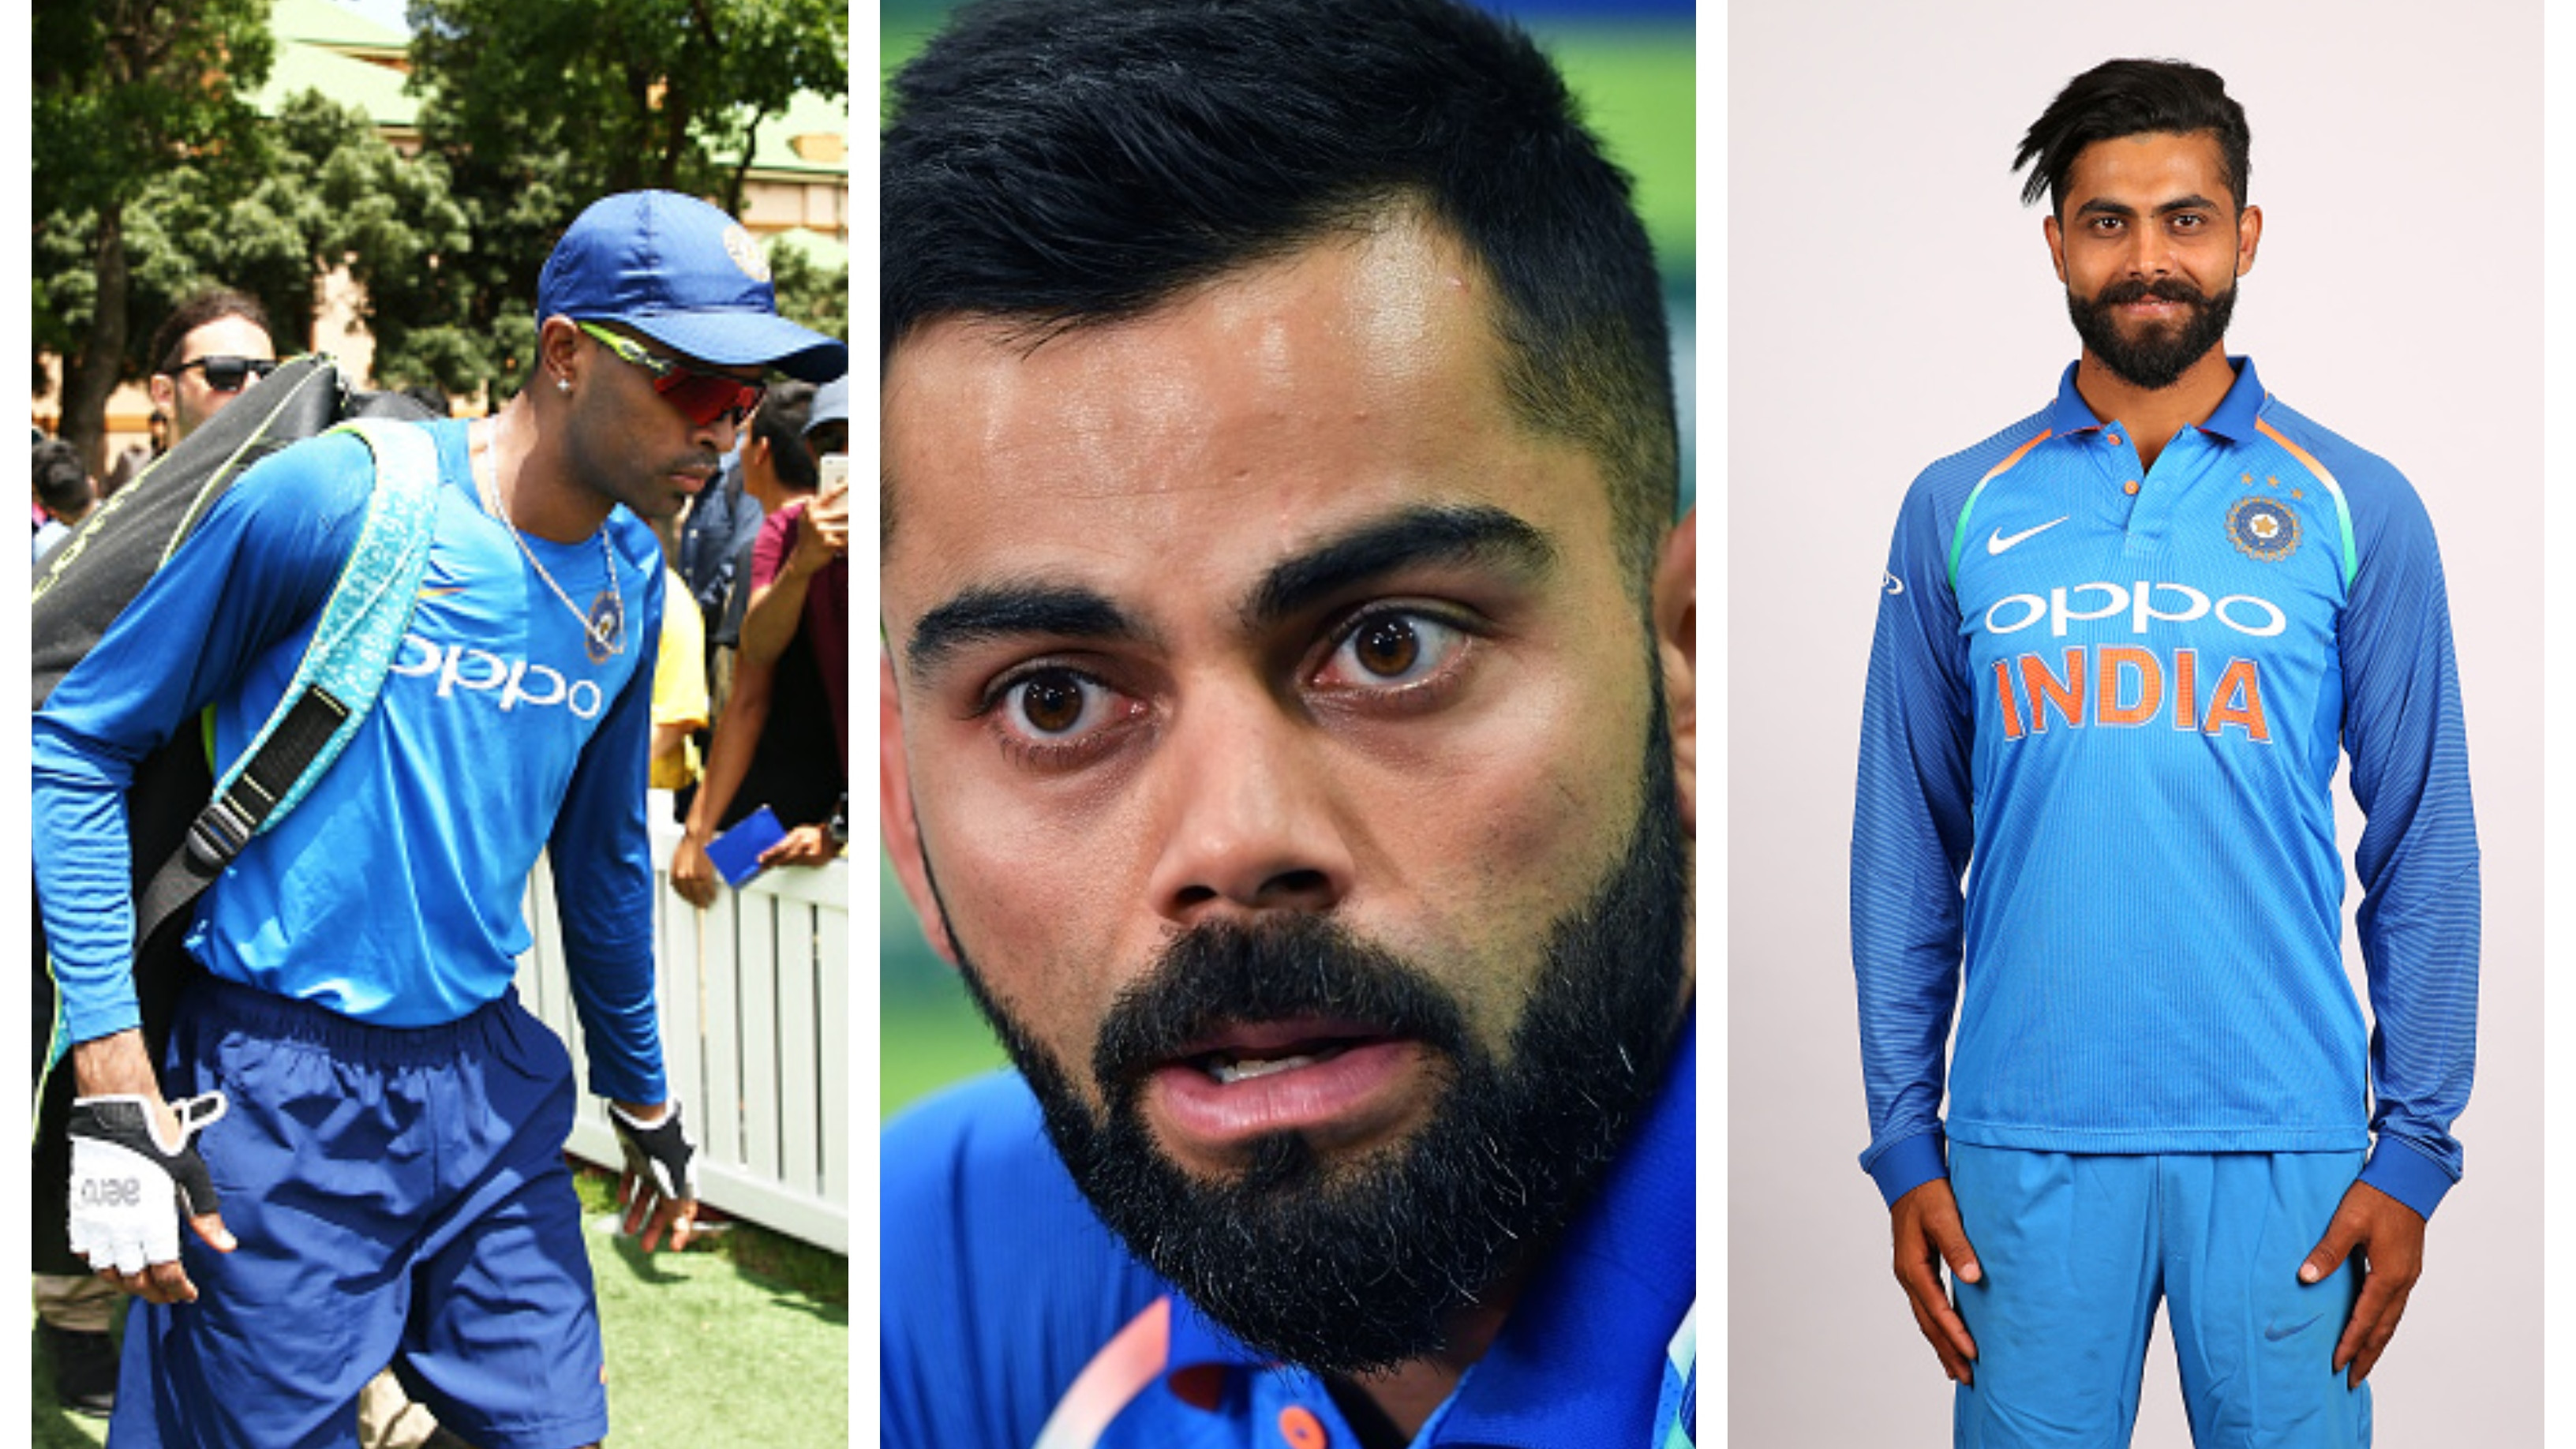 AUS v IND 2018-19: Ravindra Jadeja will take Hardik Pandya's place if needed, says Virat Kohli